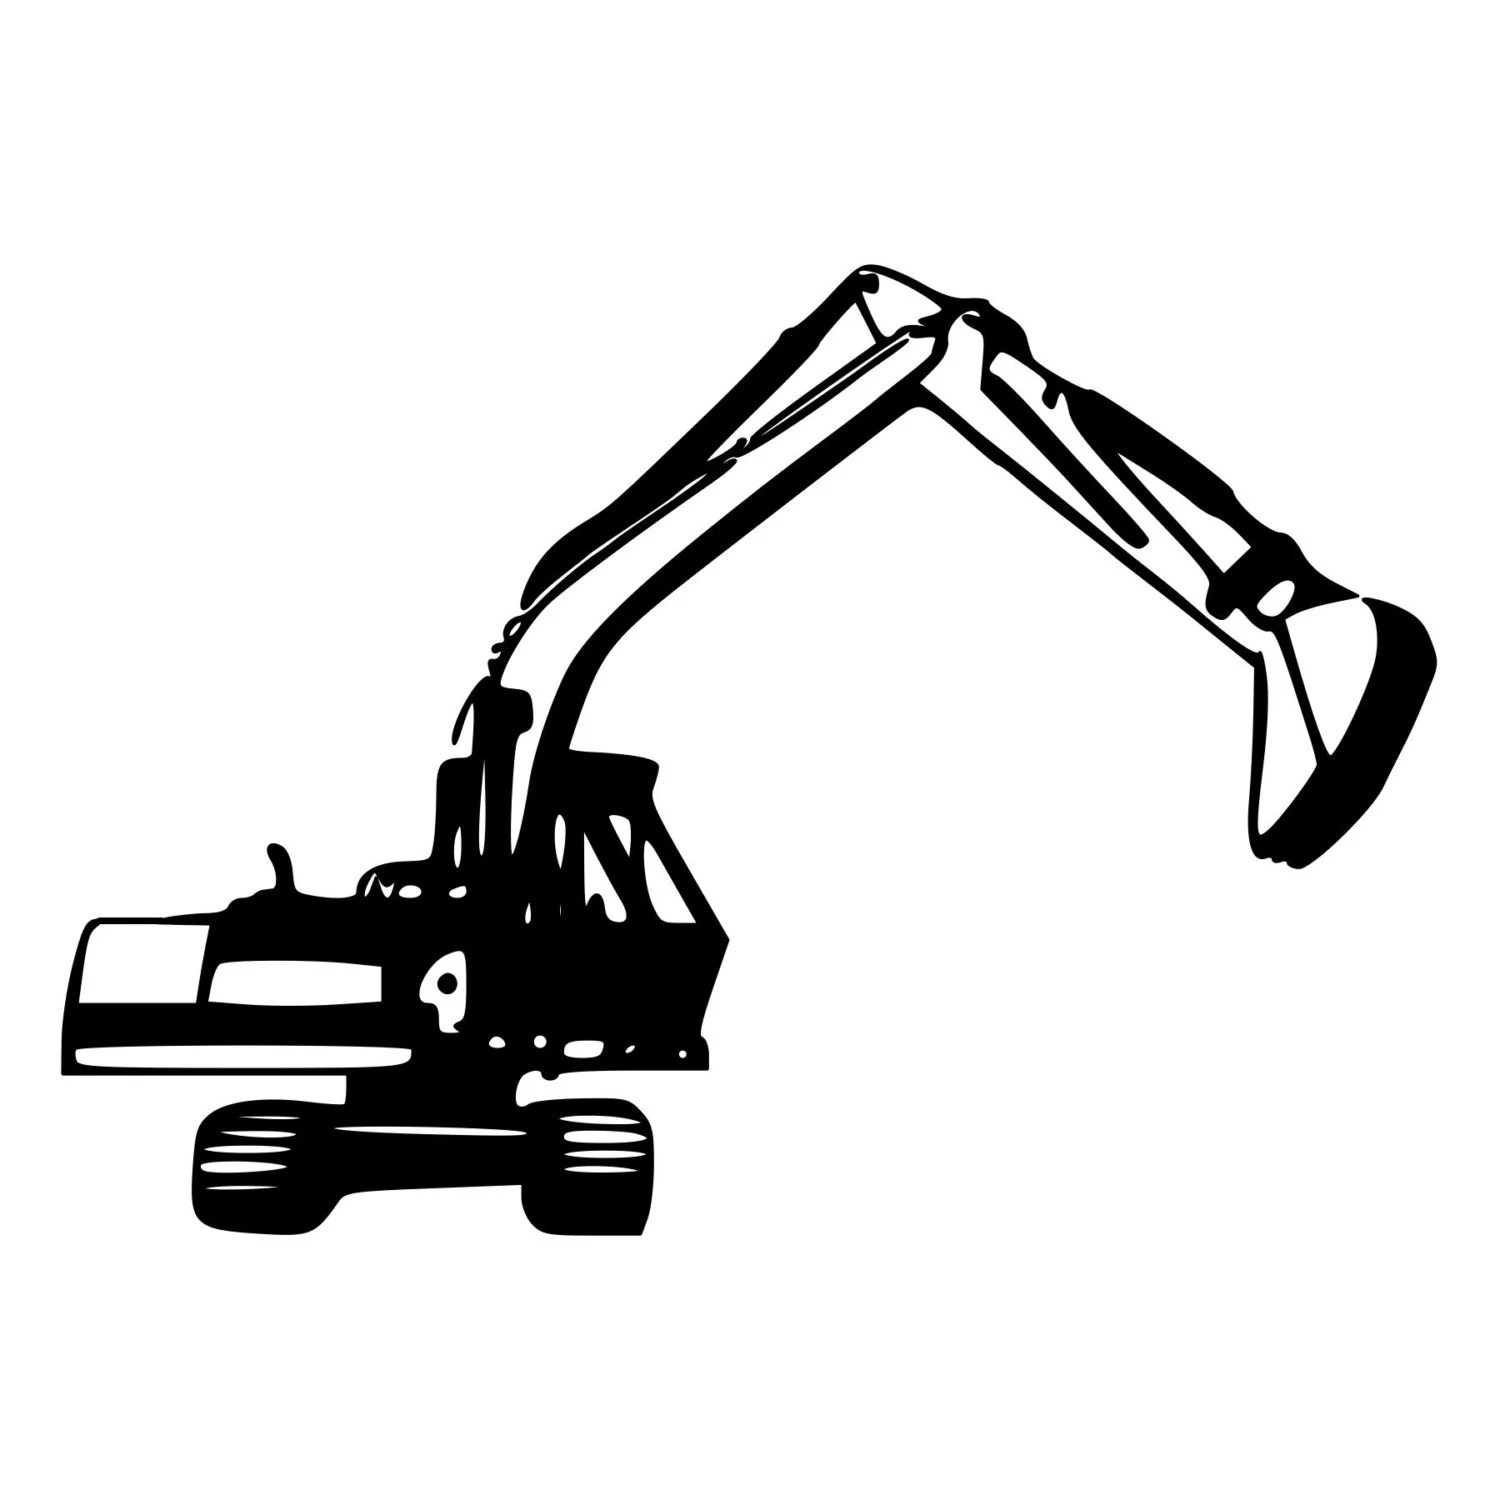 Track Hoe Excavator Construction Cut Decal Car Window Wall